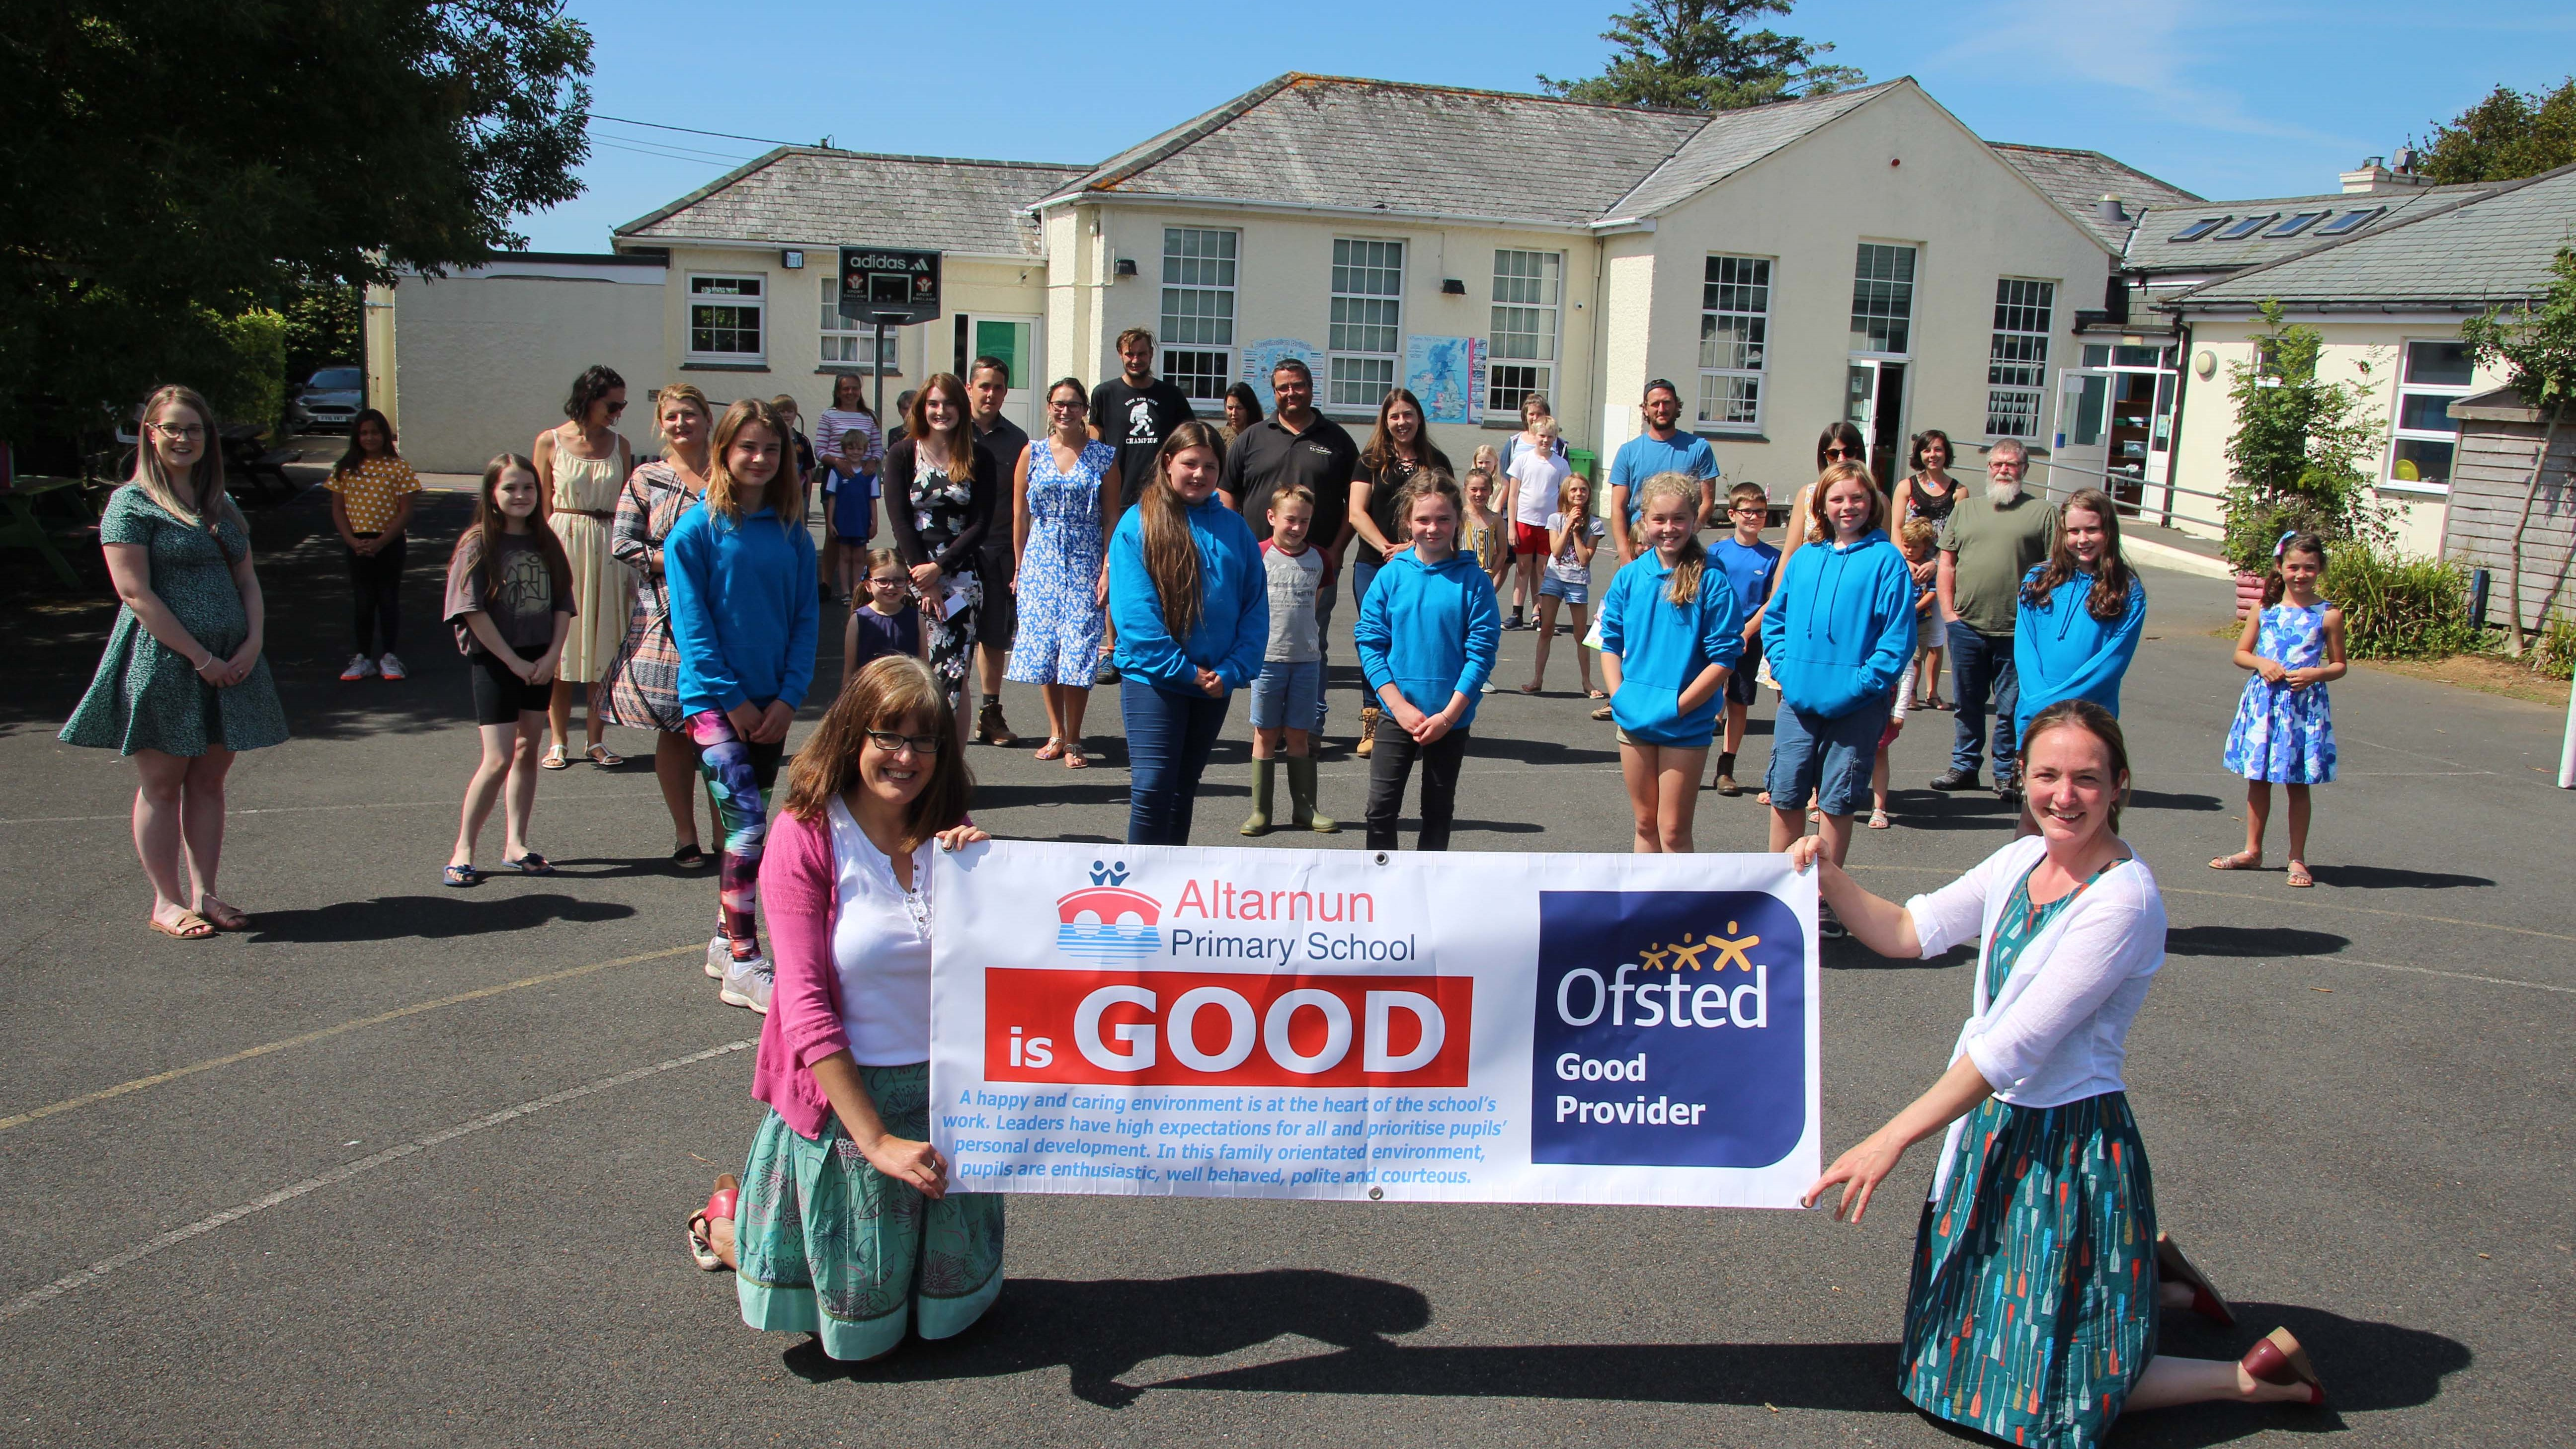 Altarnun Primary School - Proud to be Good!